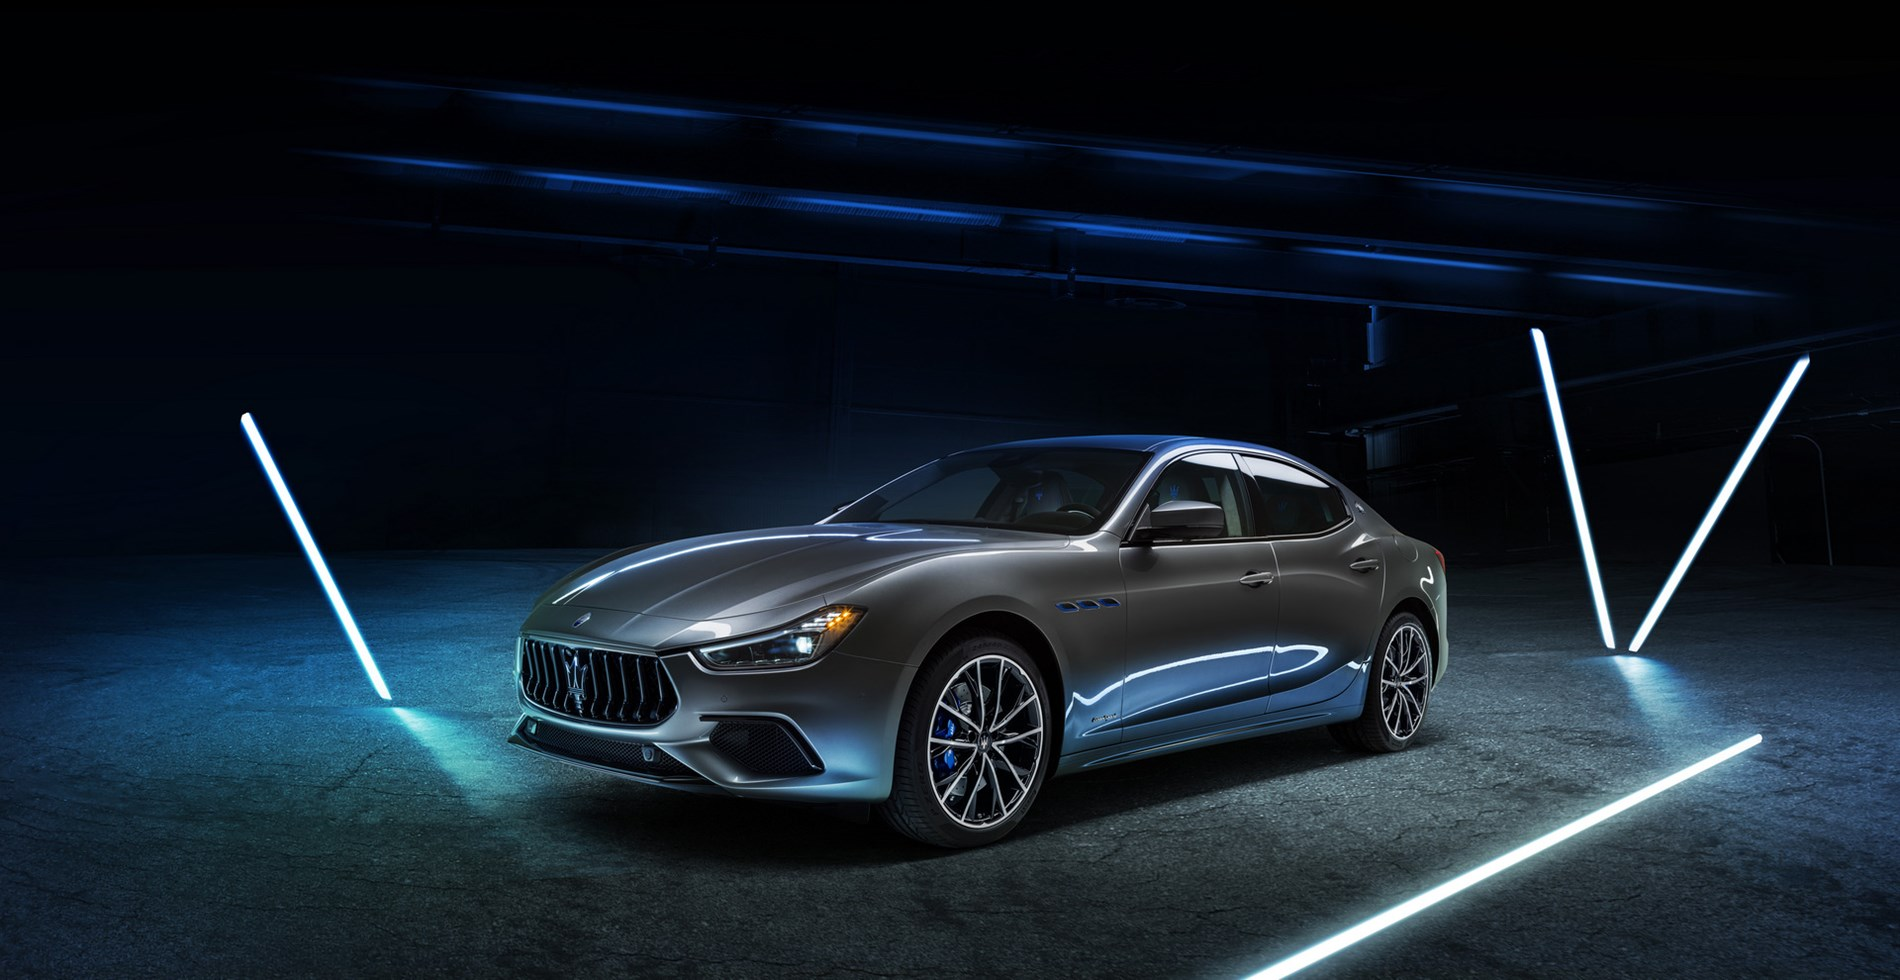 Maserati Ghibli Hybrid, the first of a new species